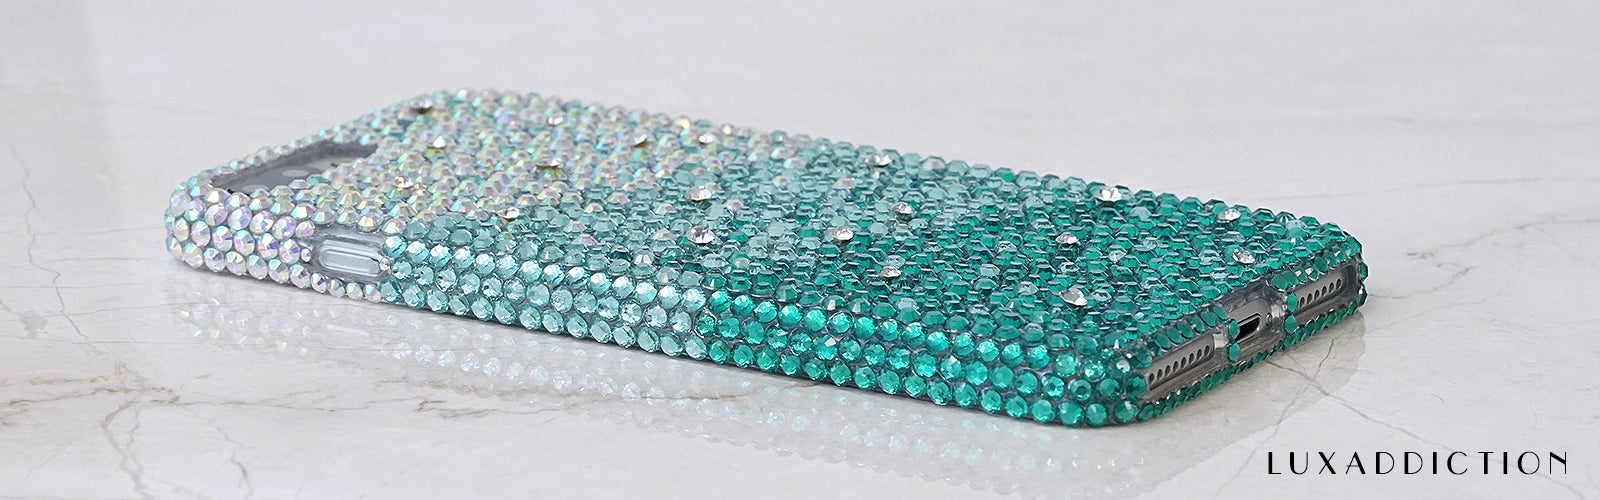 Turquoise crystals iphone 7 plus case